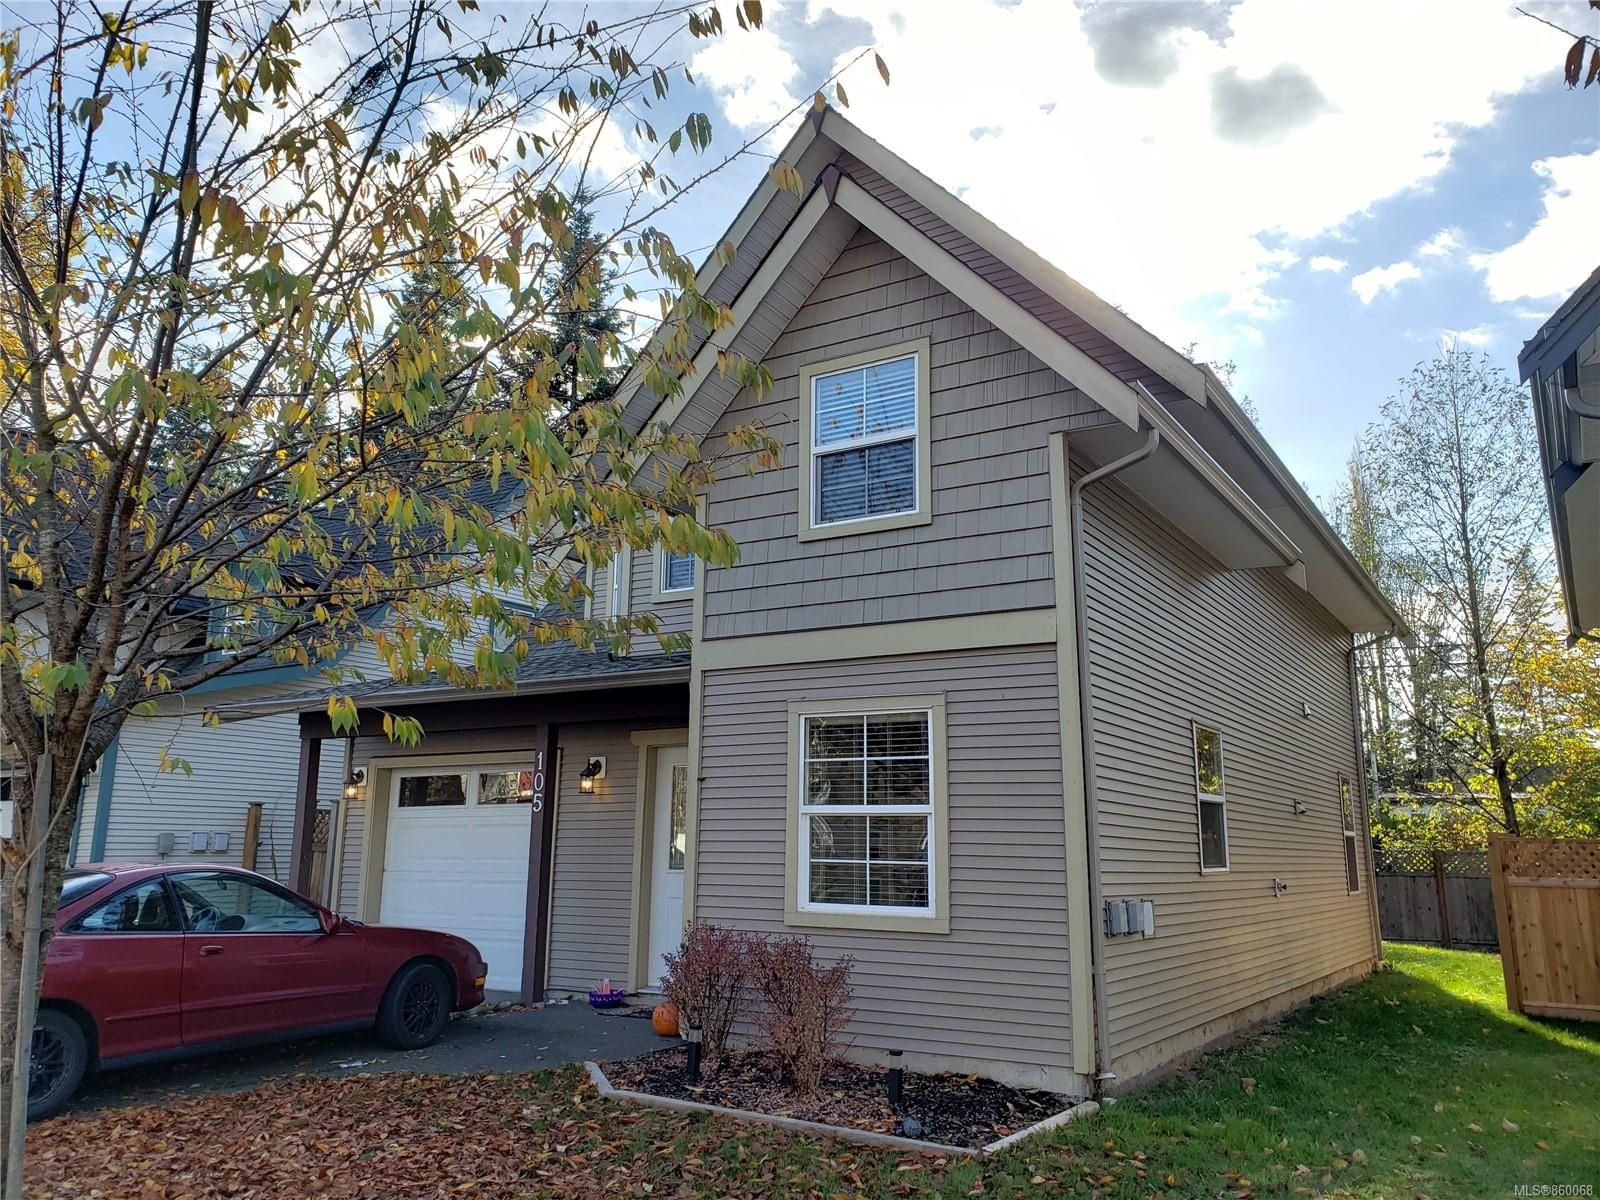 Photo 30: Photos: 105 2787 1st St in Courtenay: CV Courtenay City House for sale (Comox Valley)  : MLS®# 860068